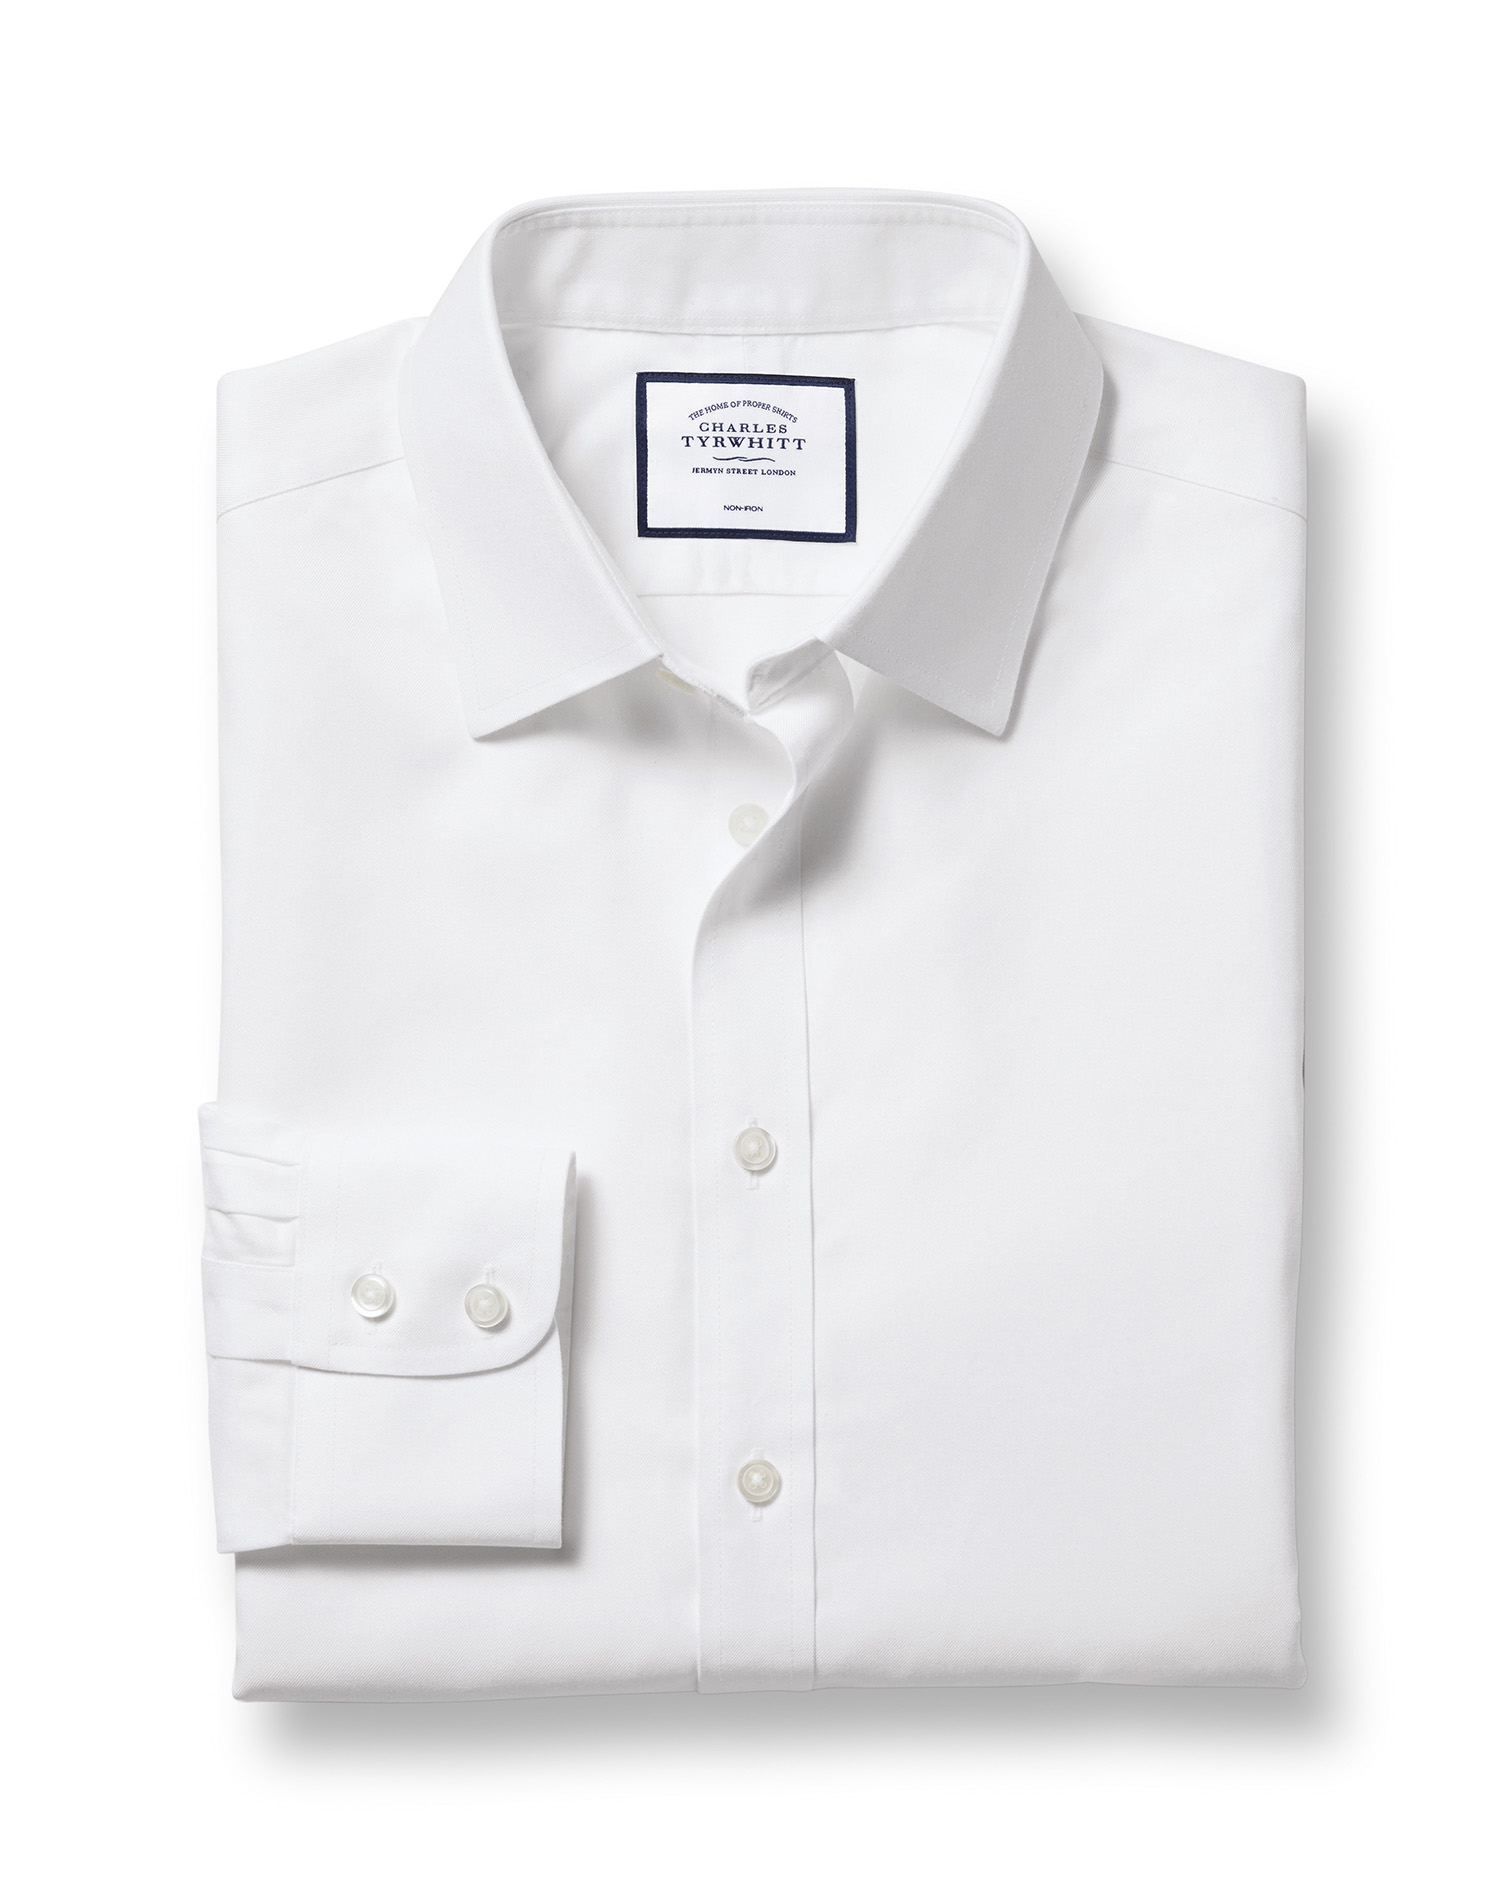 Classic Fit Non-Iron Twill White Cotton Formal Shirt Double Cuff Size 16.5/38 by Charles Tyrwhitt